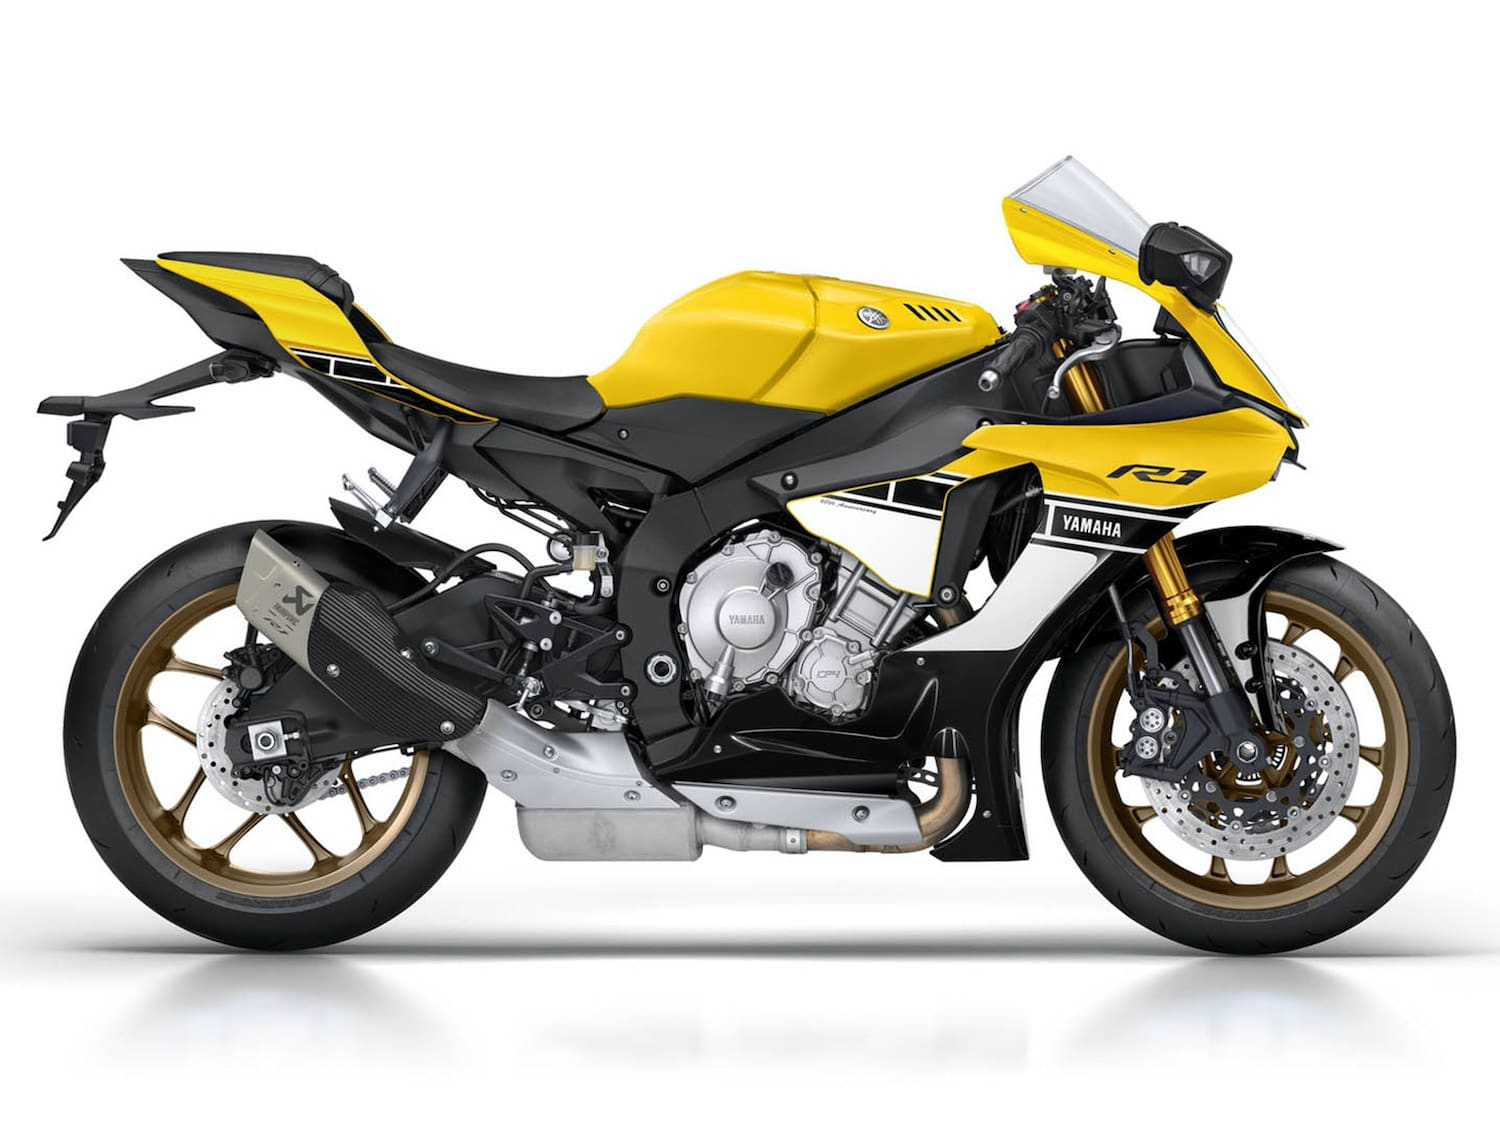 Yamaha 2016 anniversary edition with cornering ABS standard